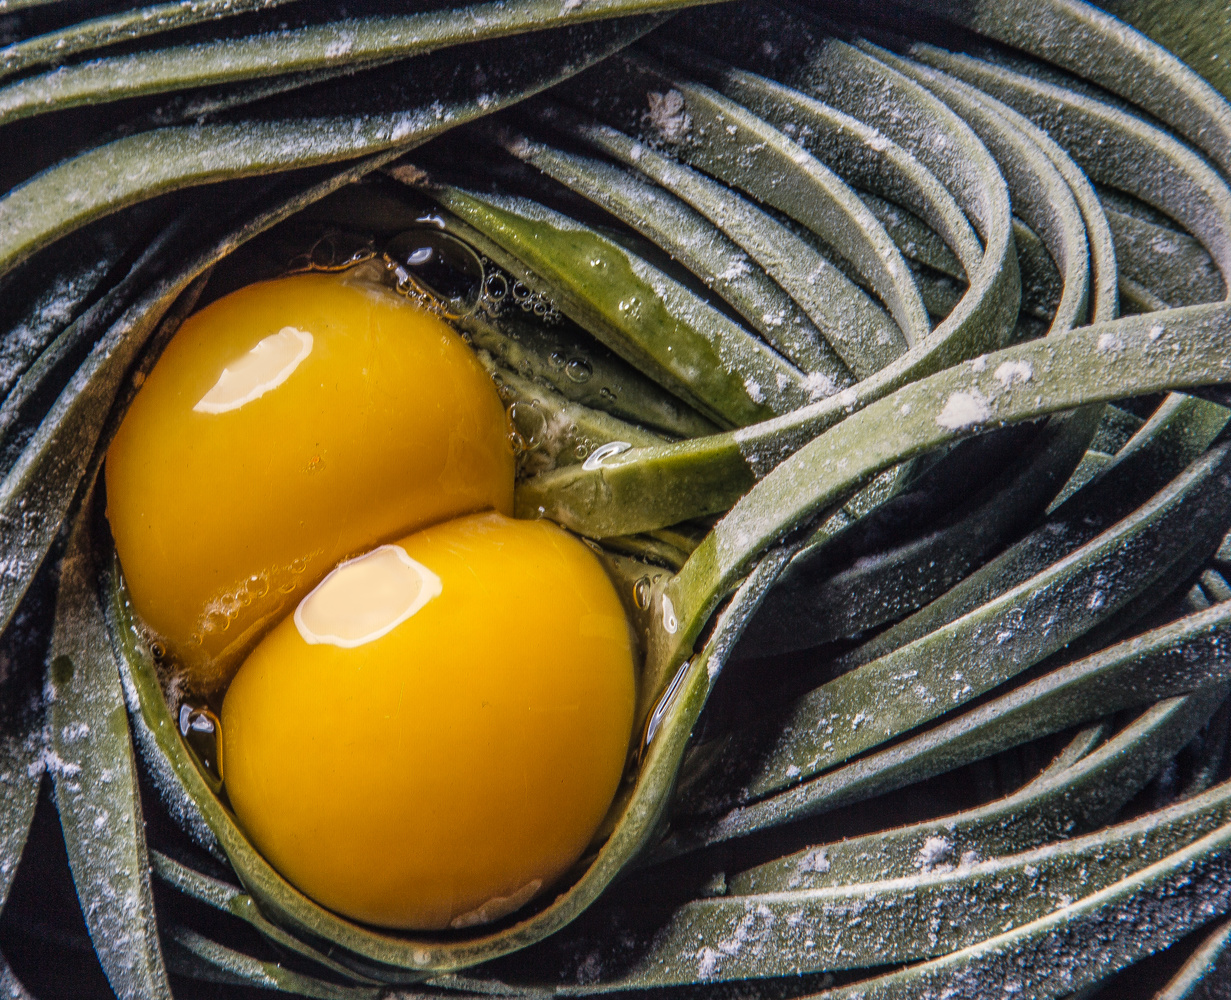 Noodles and eggs still life by Faro Mojahedi